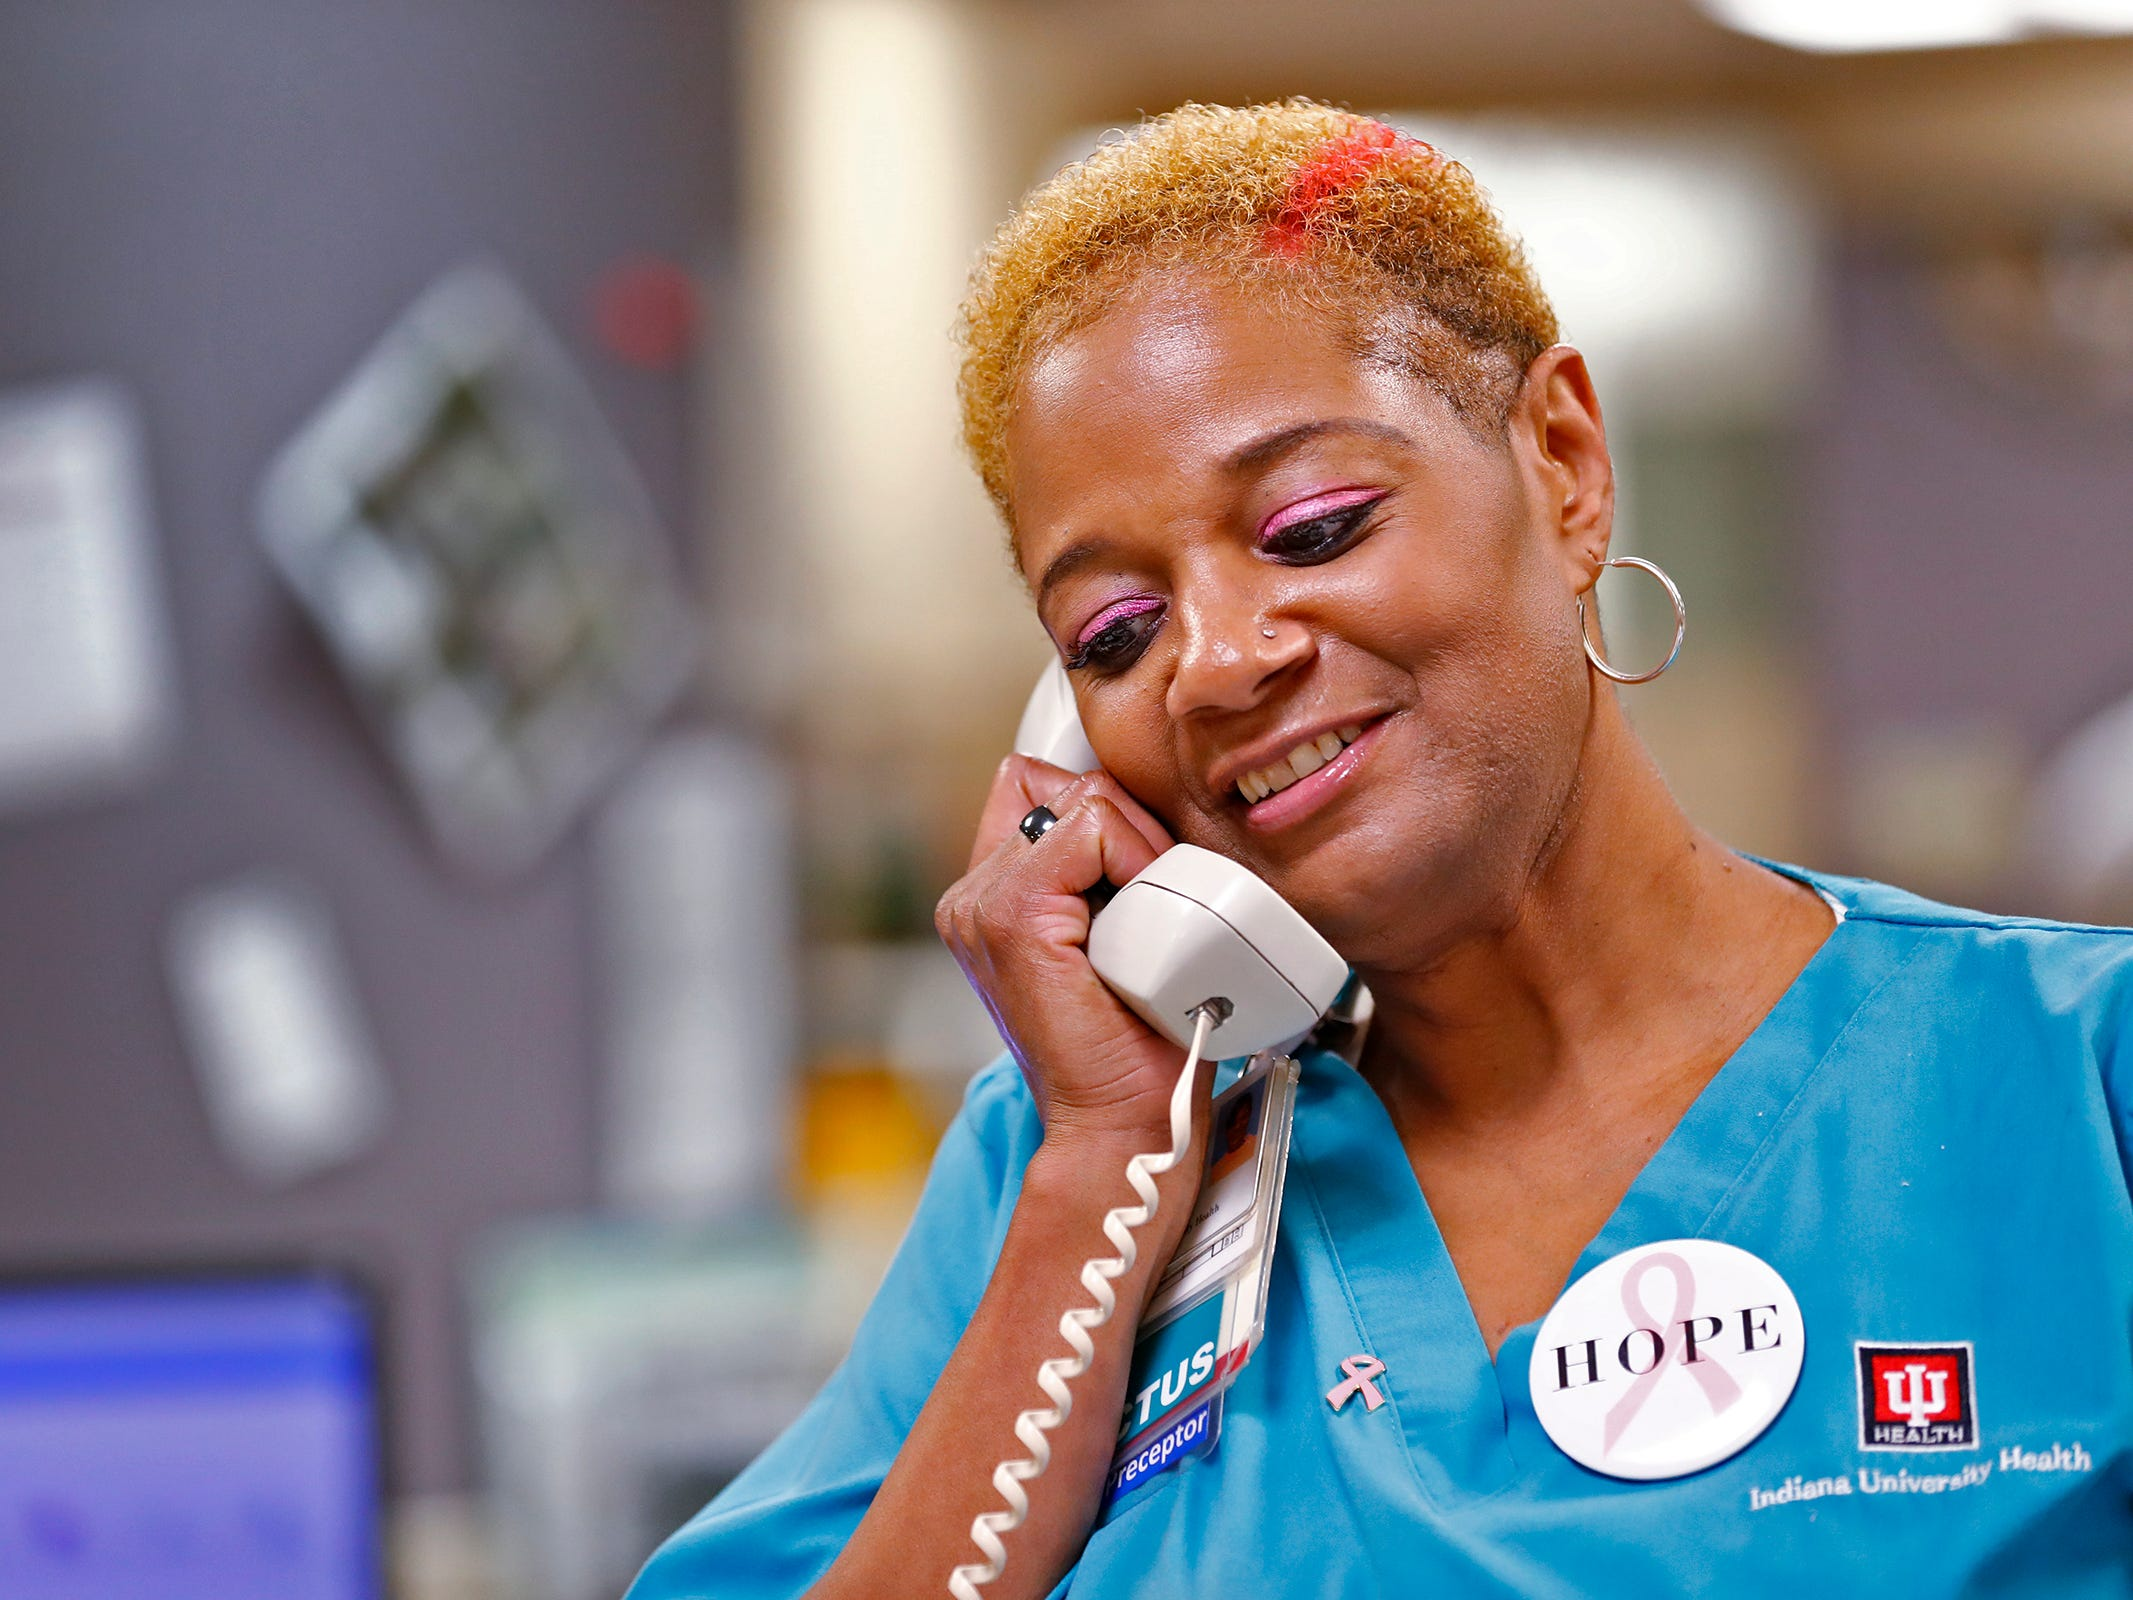 "Crystal Crayton takes a call as she sports a streak of pink in her hair and pink eye shadow at the Indiana University Melvin and Bren Simon Cancer Center, Wednesday, Oct. 3, 2018.  IU Health staff members are given the opportunity to ""go pink"" to show support for their patients as part of Breast Cancer Awareness month."